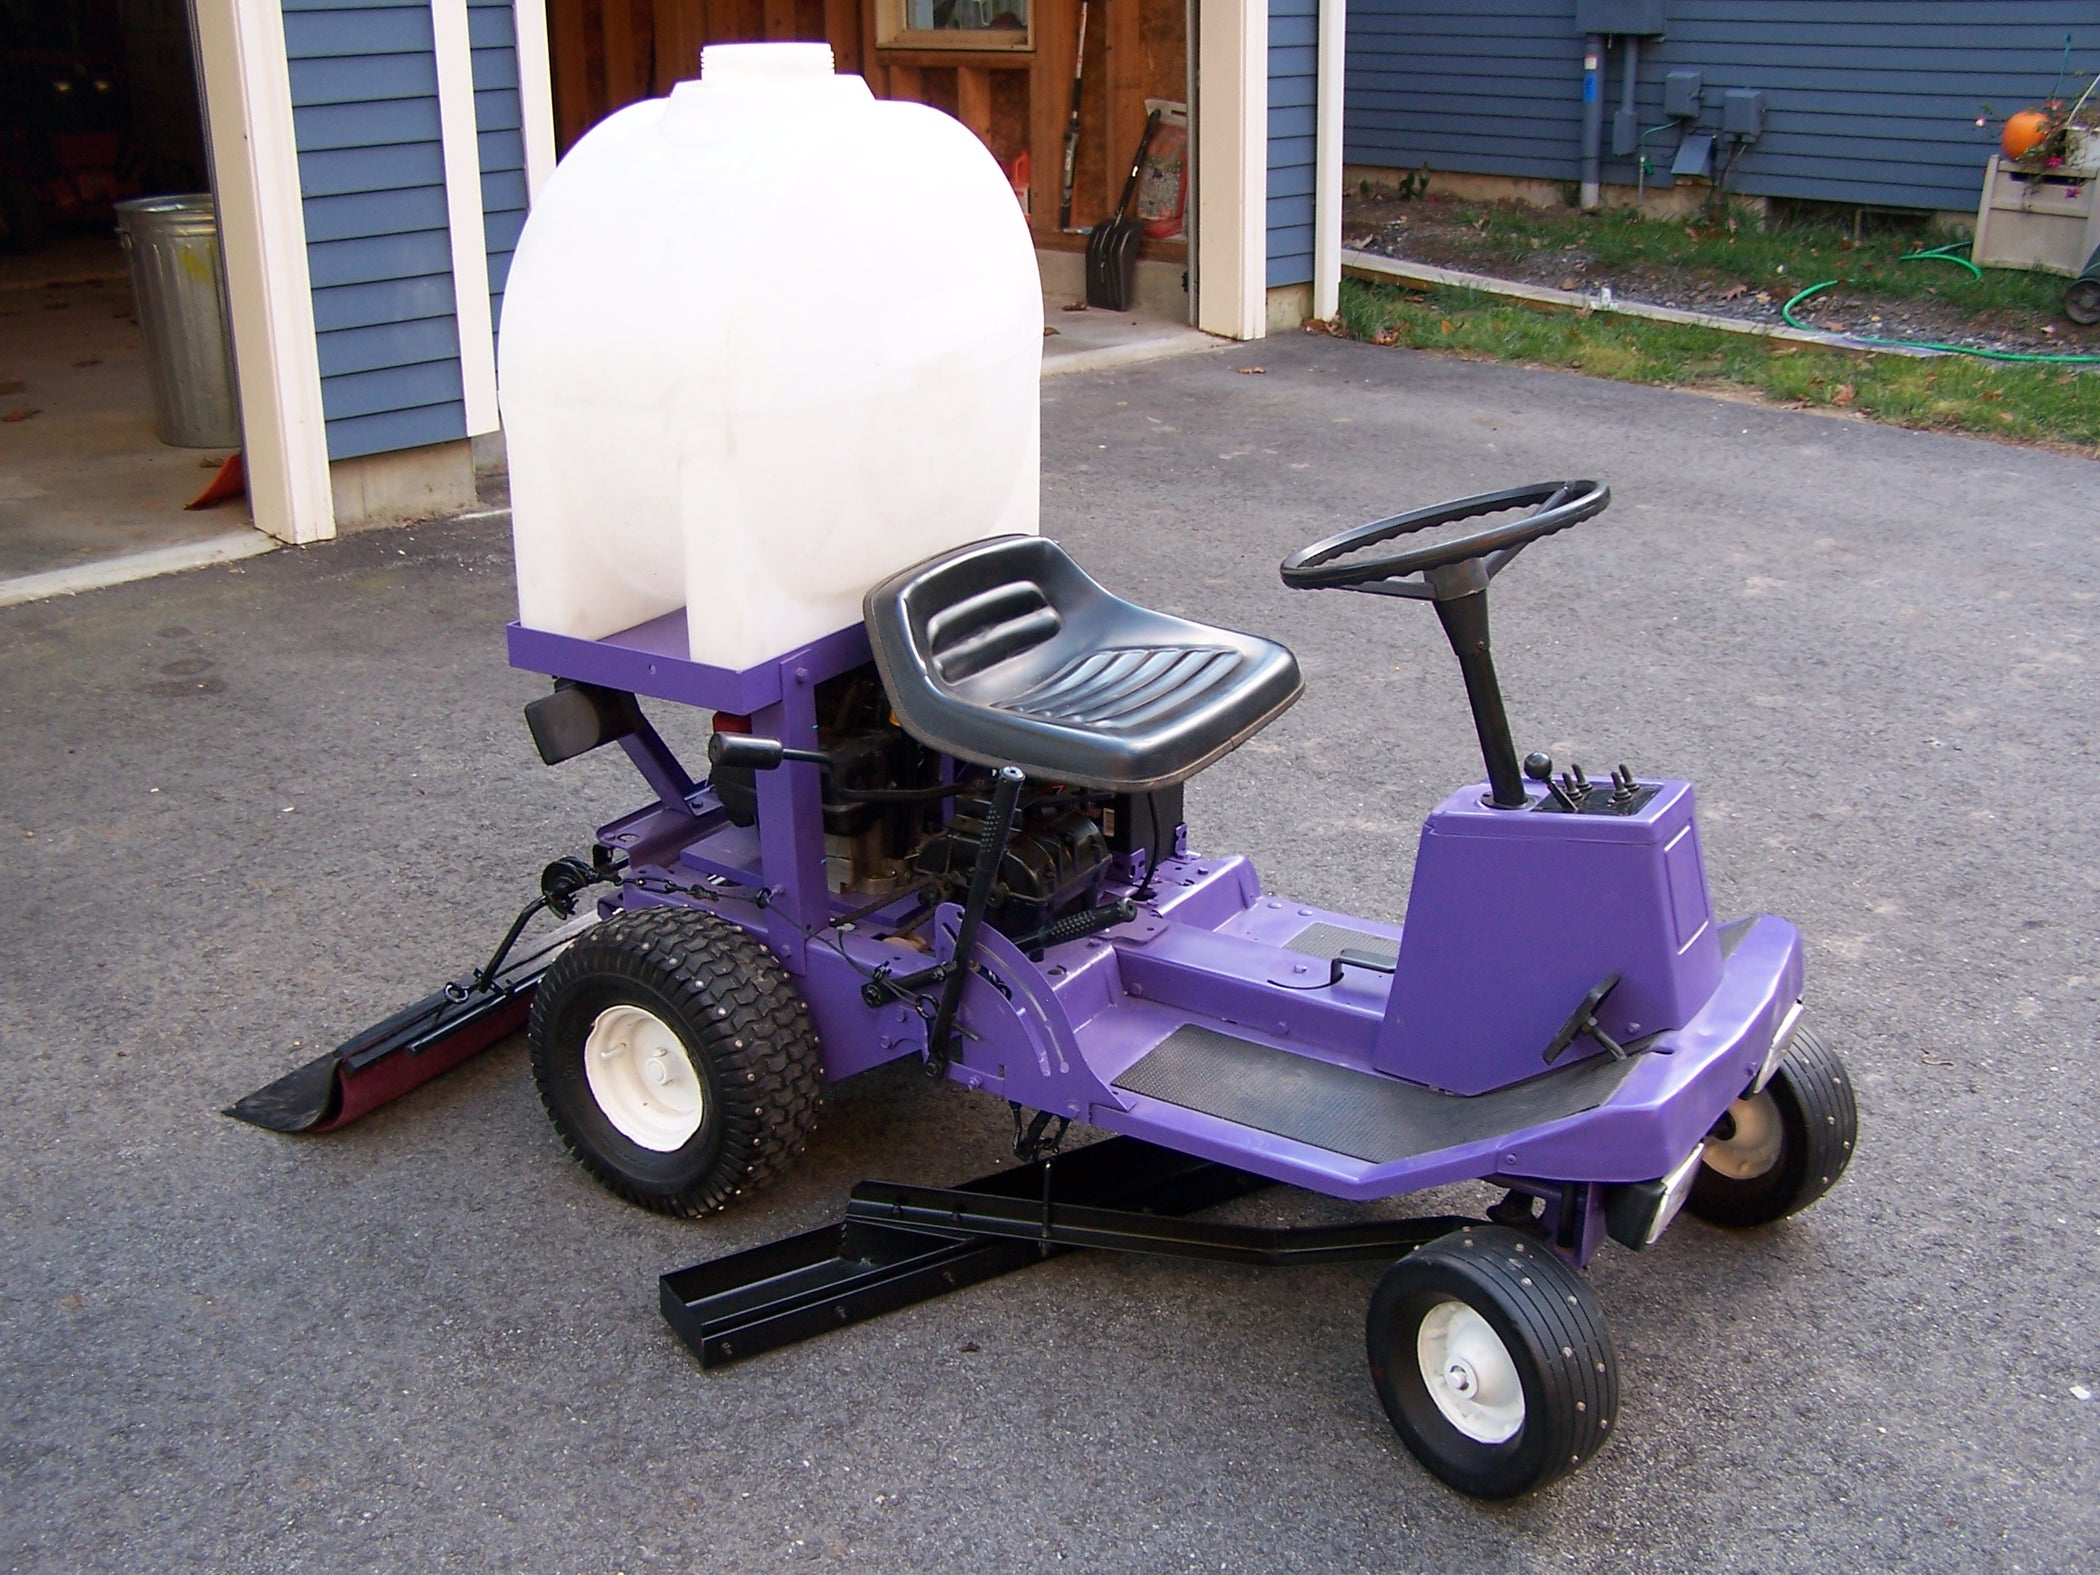 Redneck Backyard Zamboni Ice Resurfacer (with Pictures)